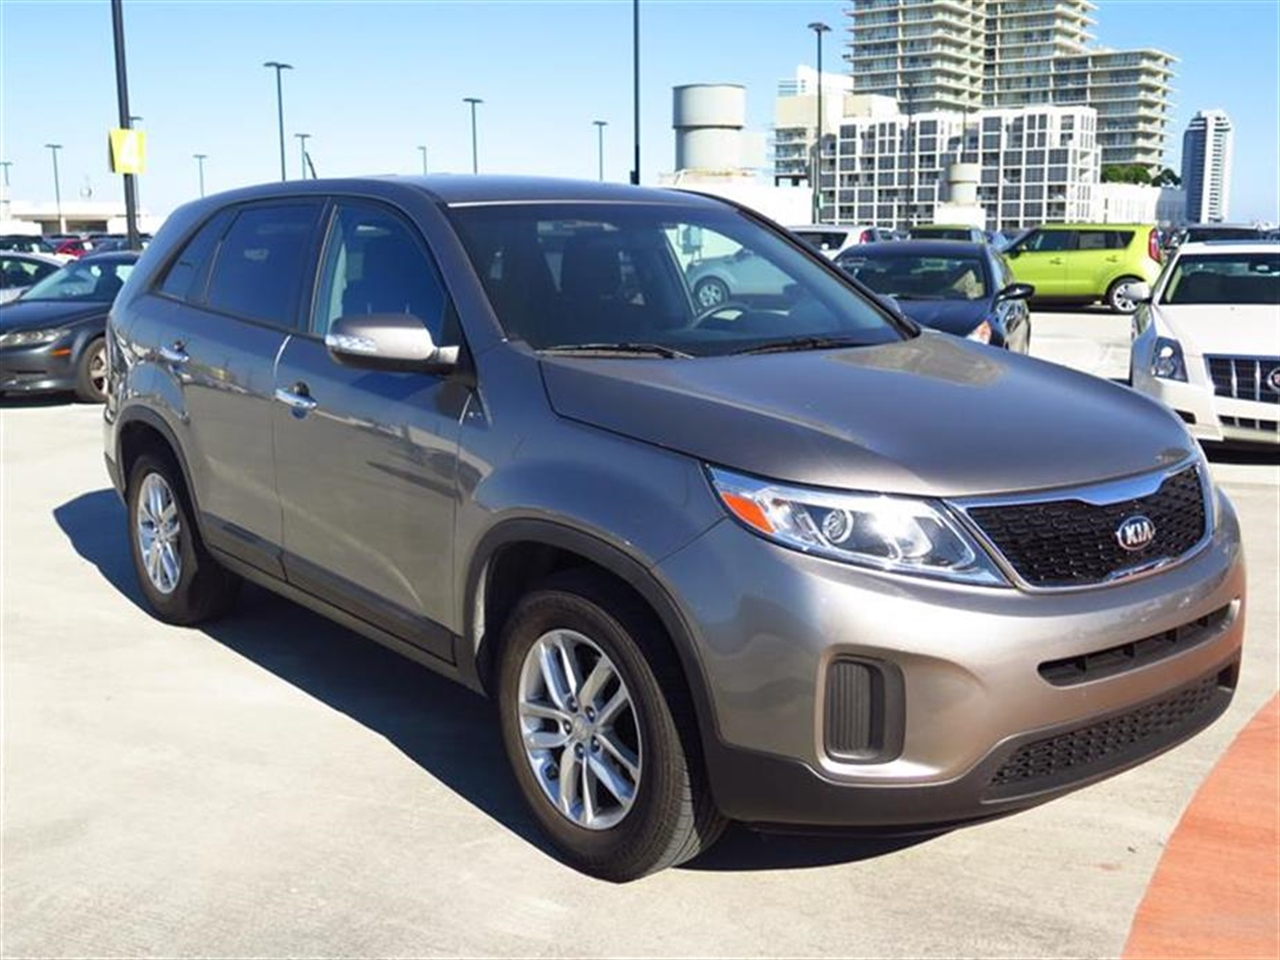 2014 KIA SORENTO 2WD 4dr I4 LX 15277 miles 2 Seatback Storage Pockets 3 12V DC Power Outlets CLO